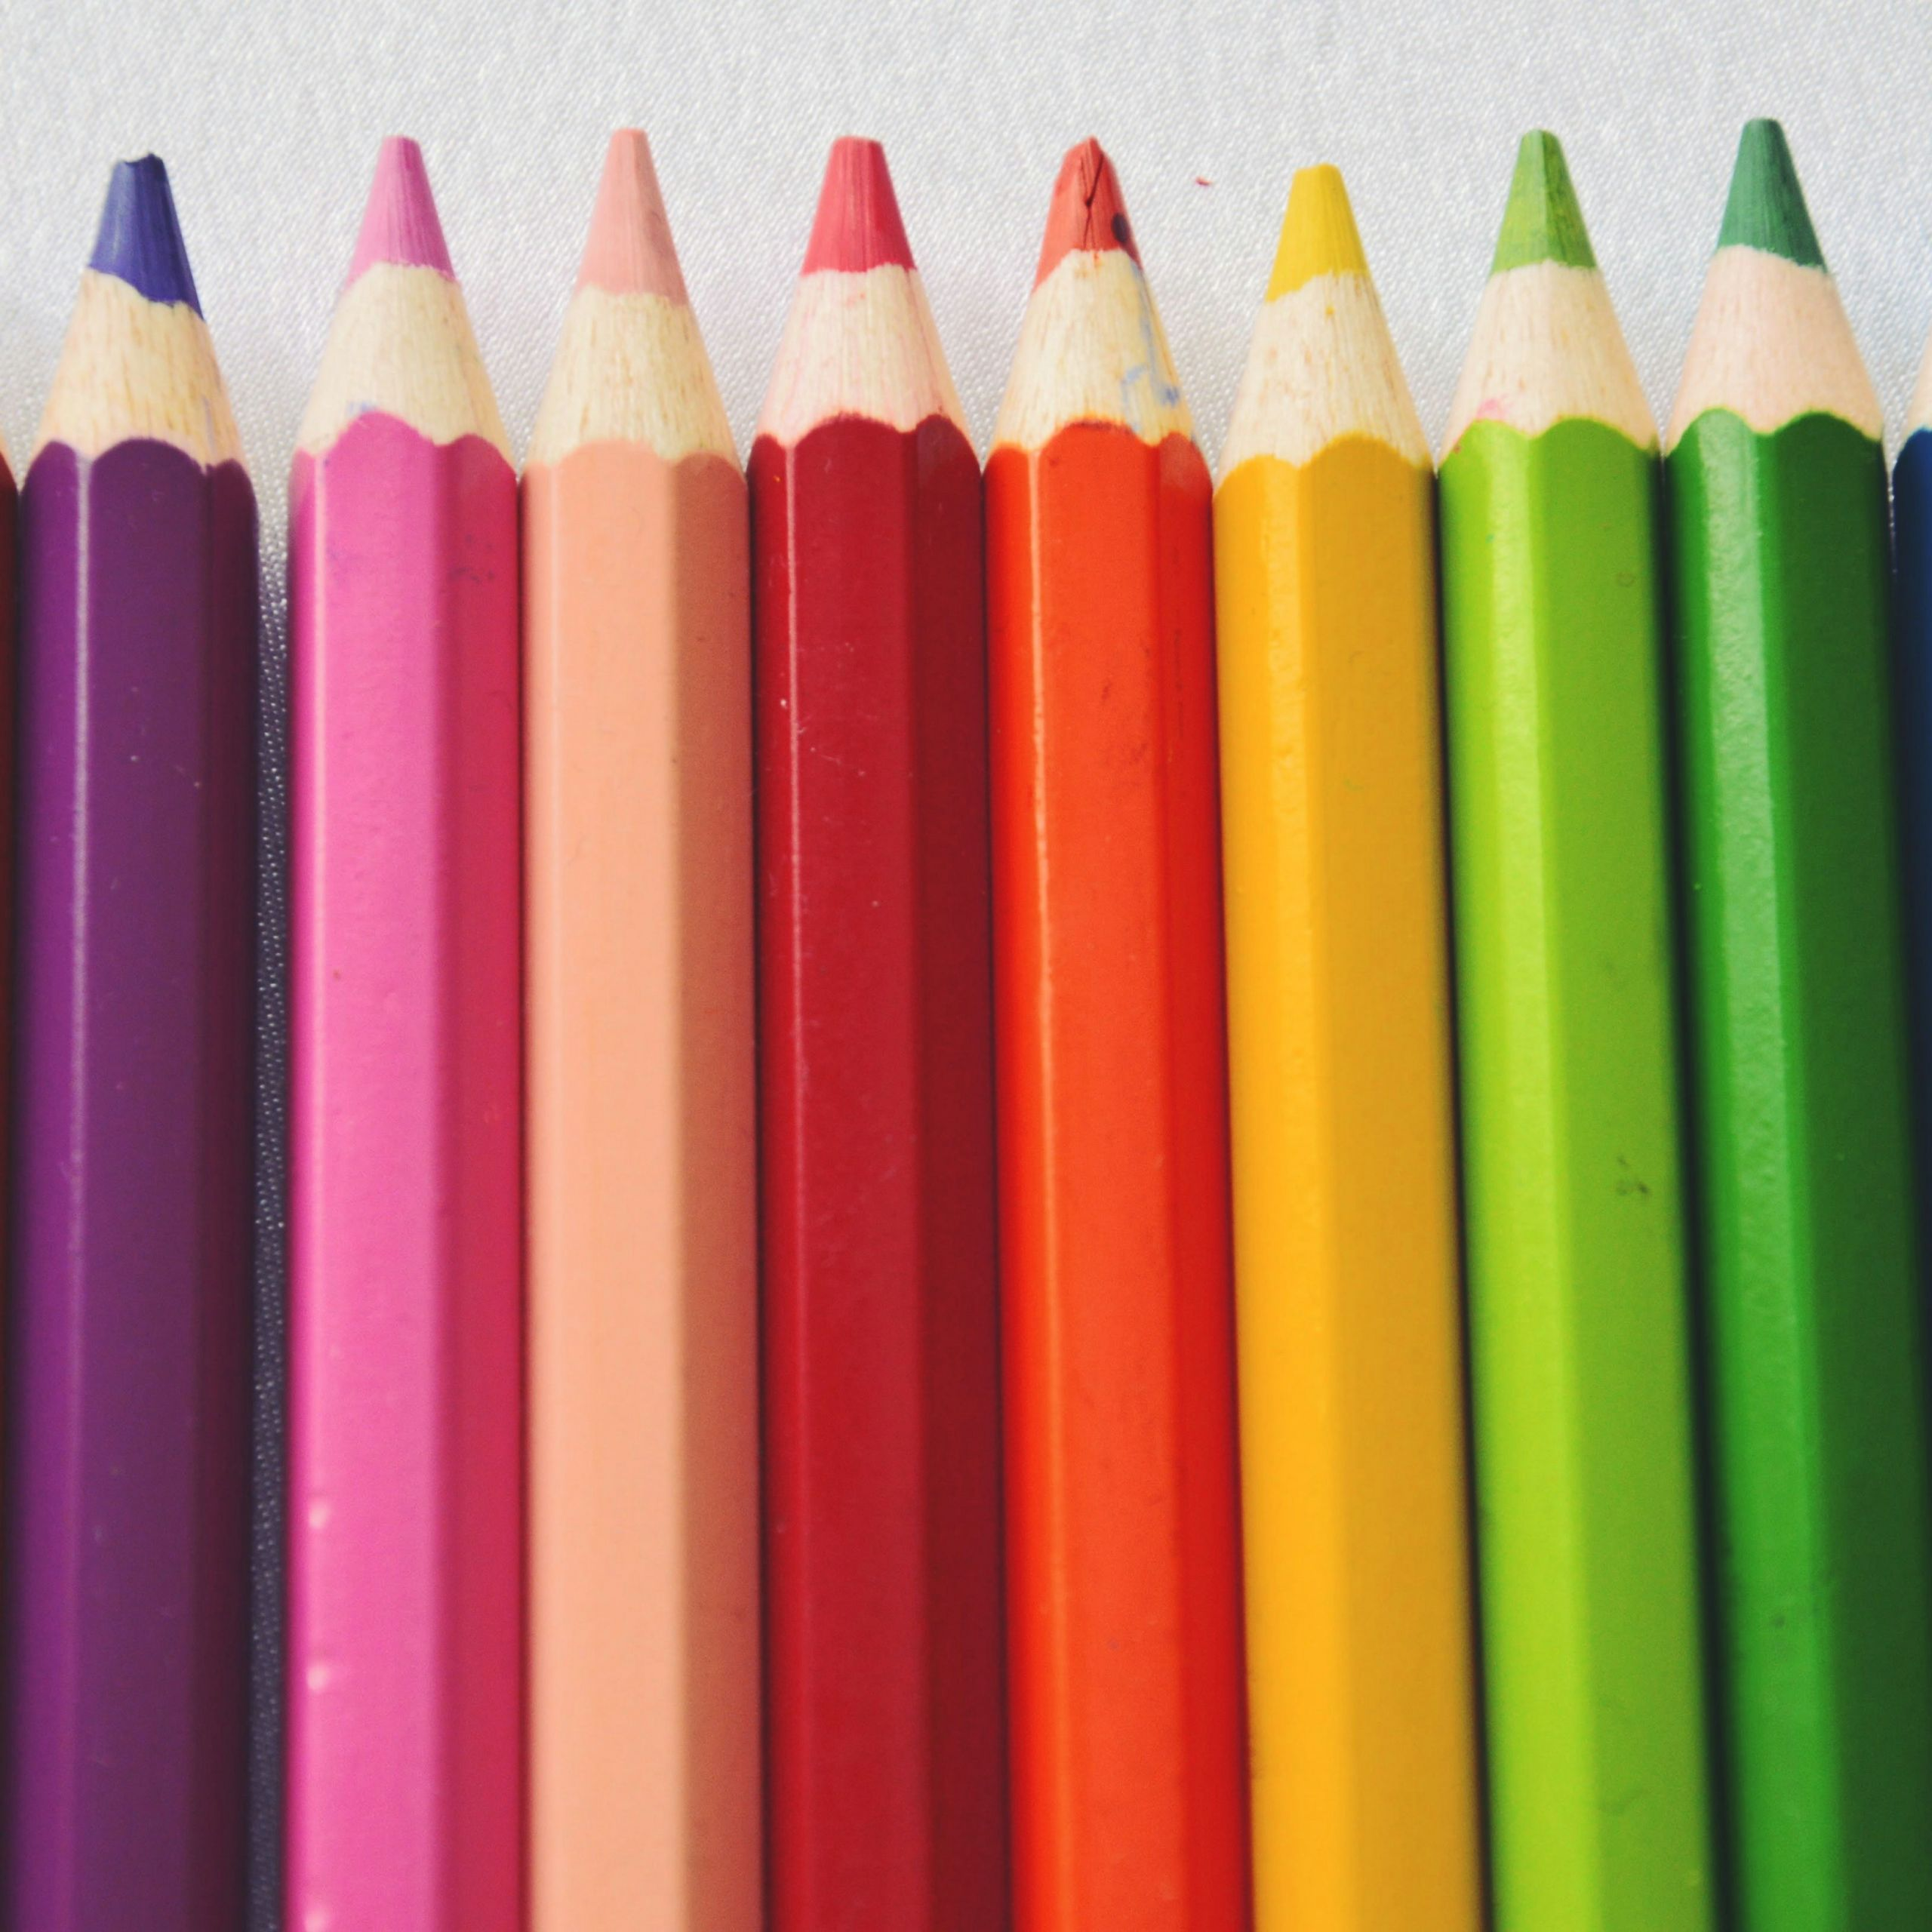 full frame shot of colorful pencils 629725513 57bde5195f9b582f38514d84 jpg